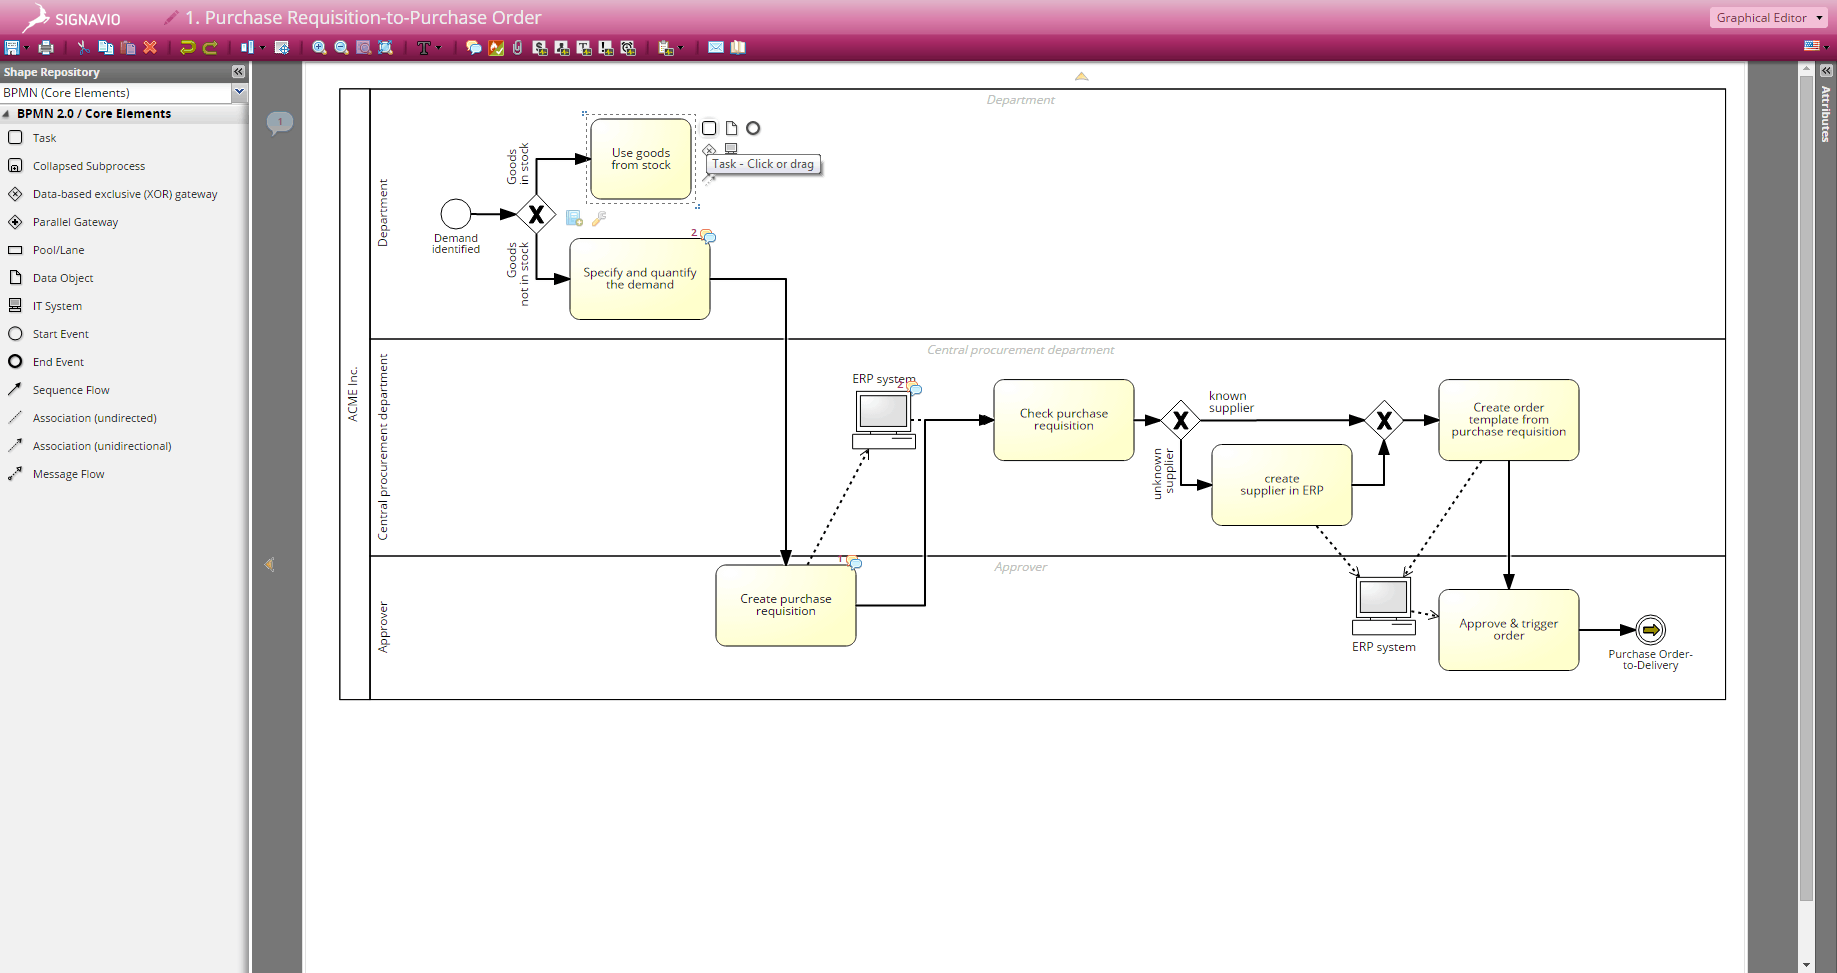 BPMN 2.0 Diagram within Signavio Process Editor